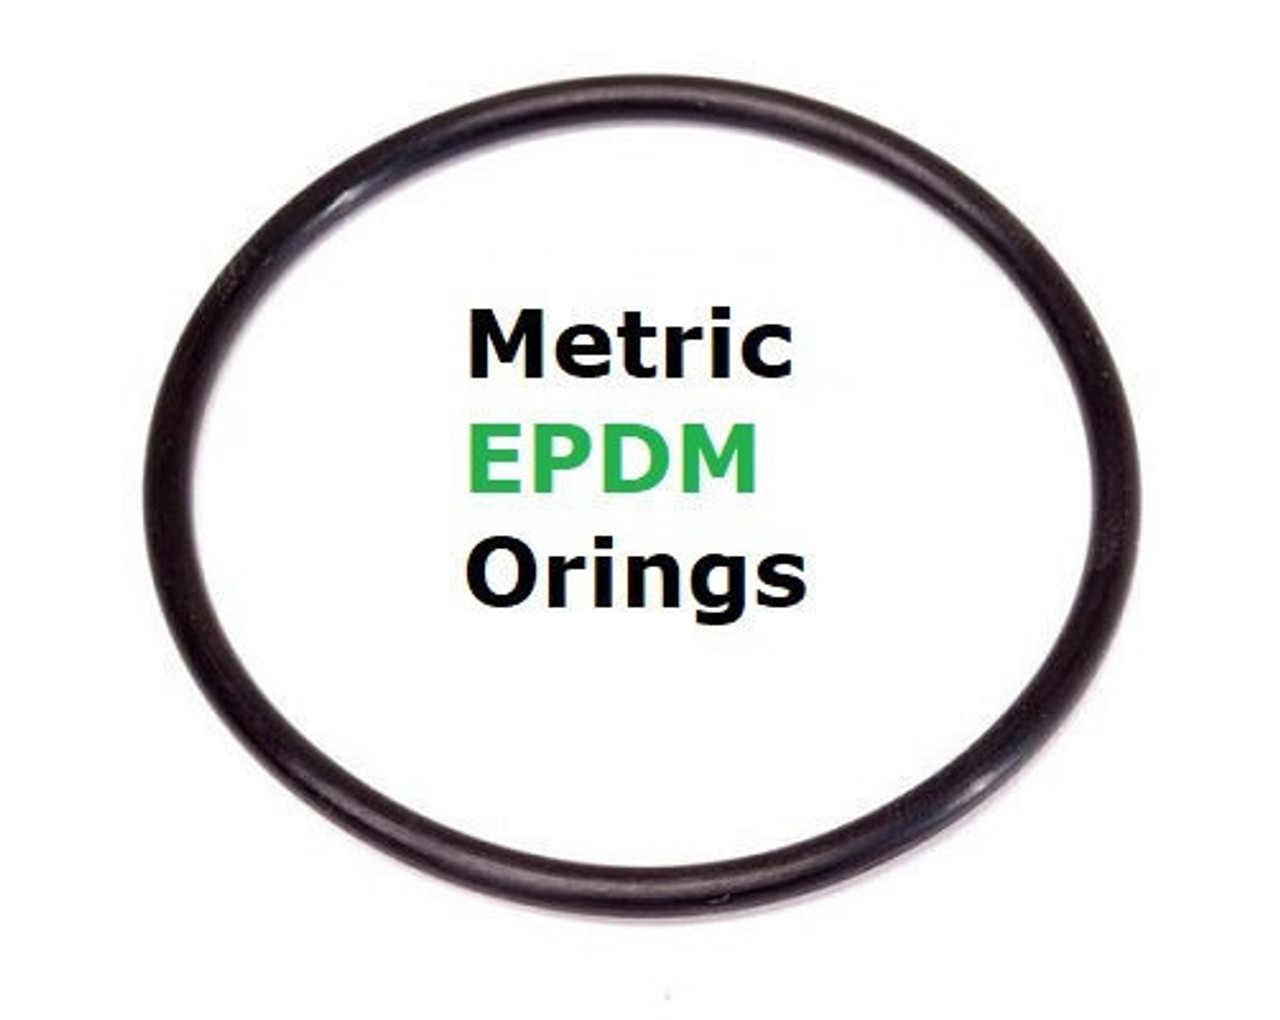 Metric EPDM 70  Orings 58 x 4mm  Minimum 2 pcs